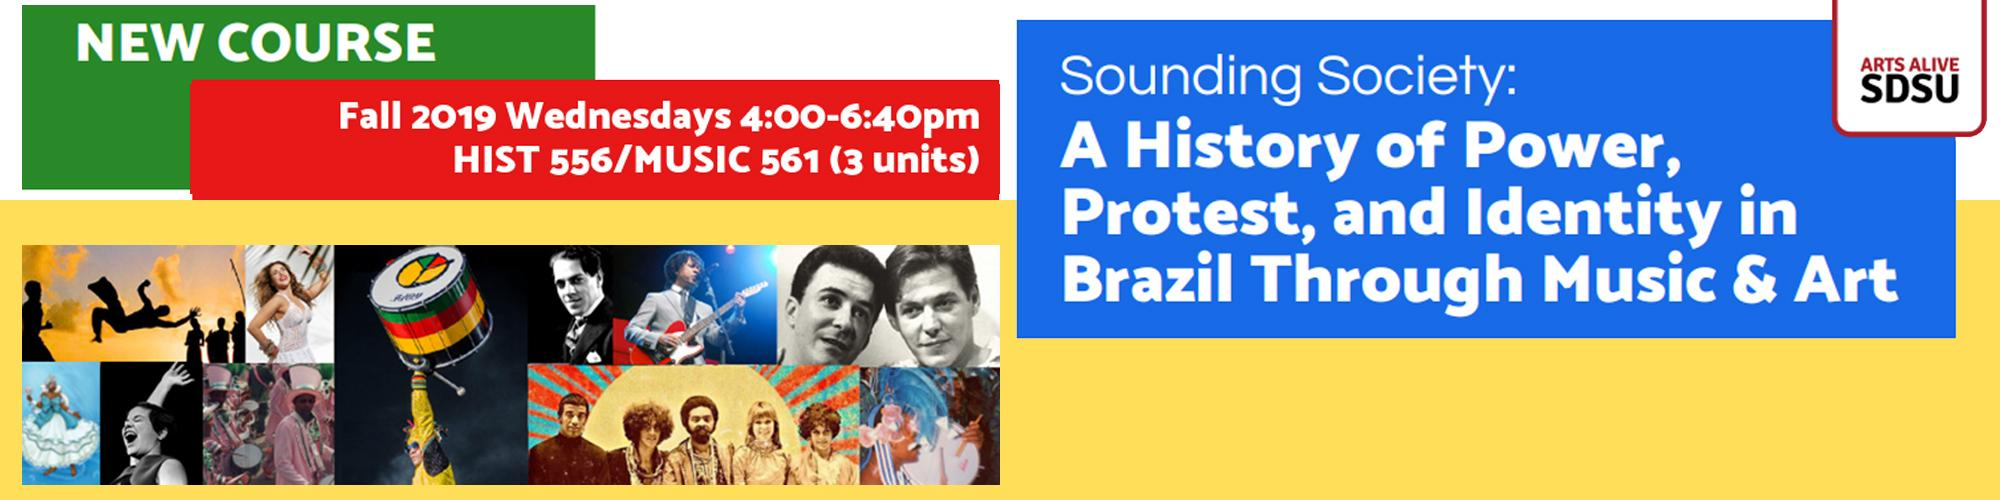 HIST 566/MUSIC 561- Sounding Society: A History of Power, Protest, and Identity in Brazil Through Music & Art